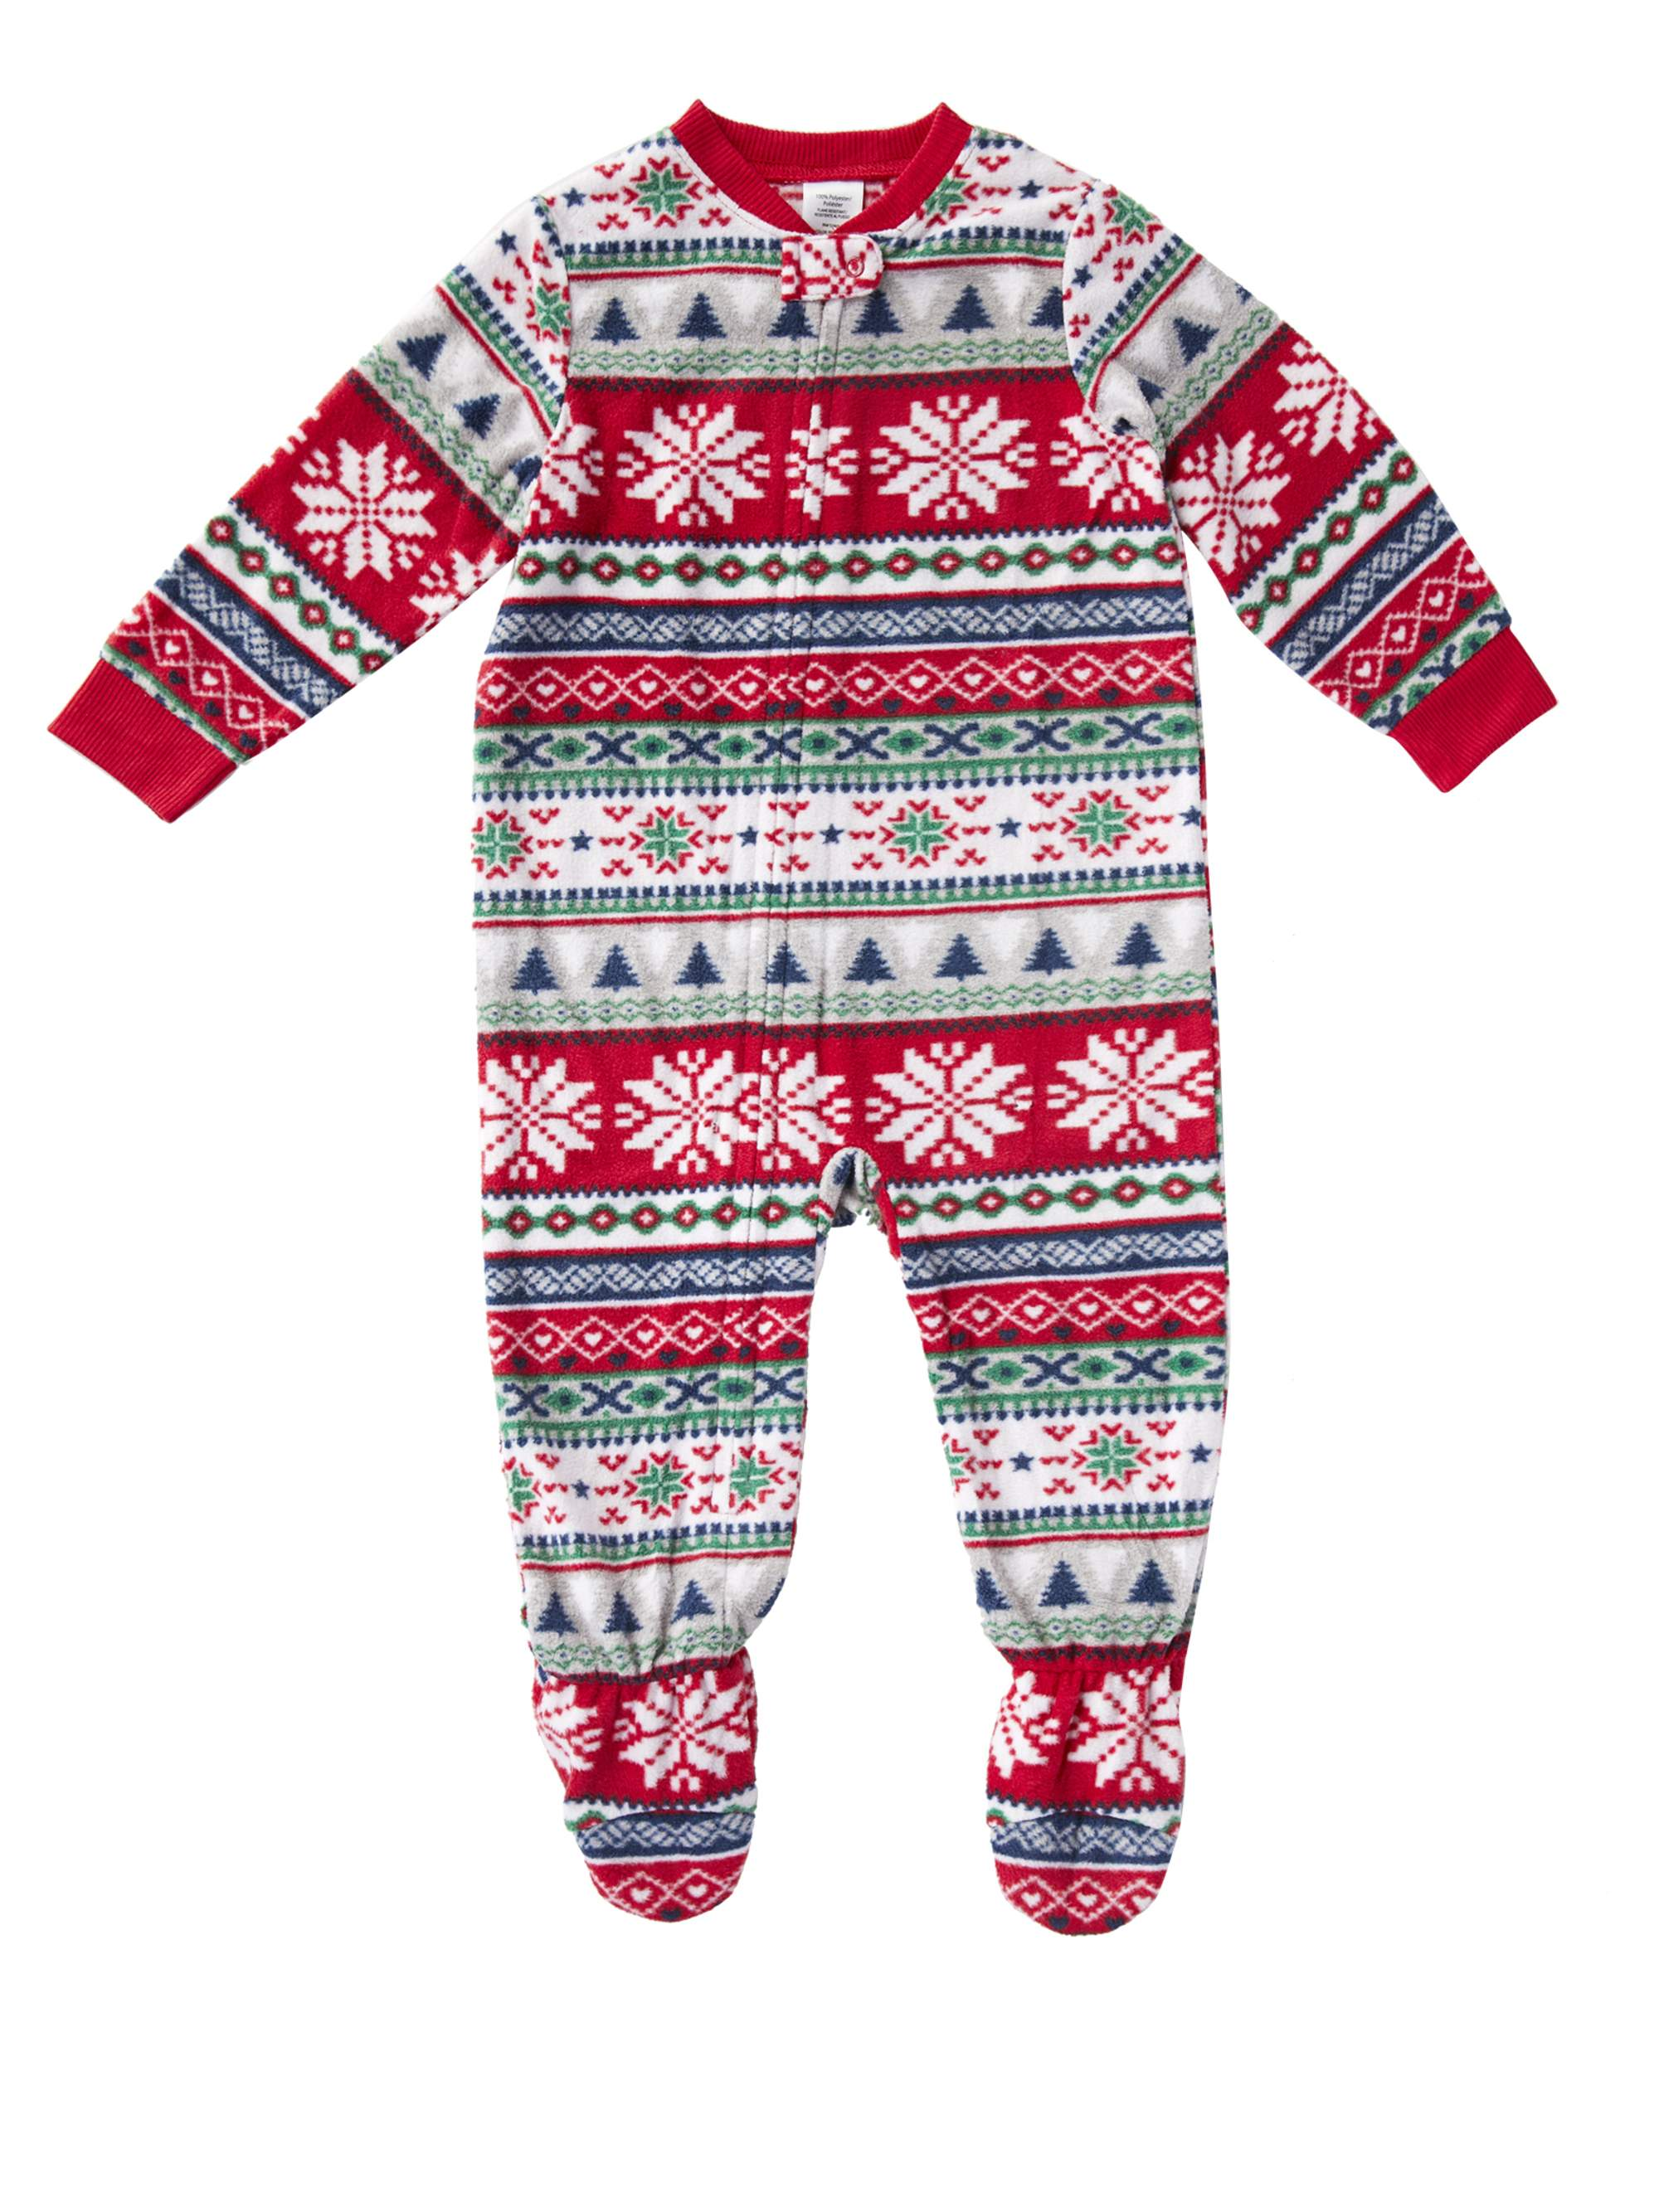 934ddcfe37e6 Family Sleep Merry Everything Pajamas 2-Piece Set (Baby Boys or Baby ...